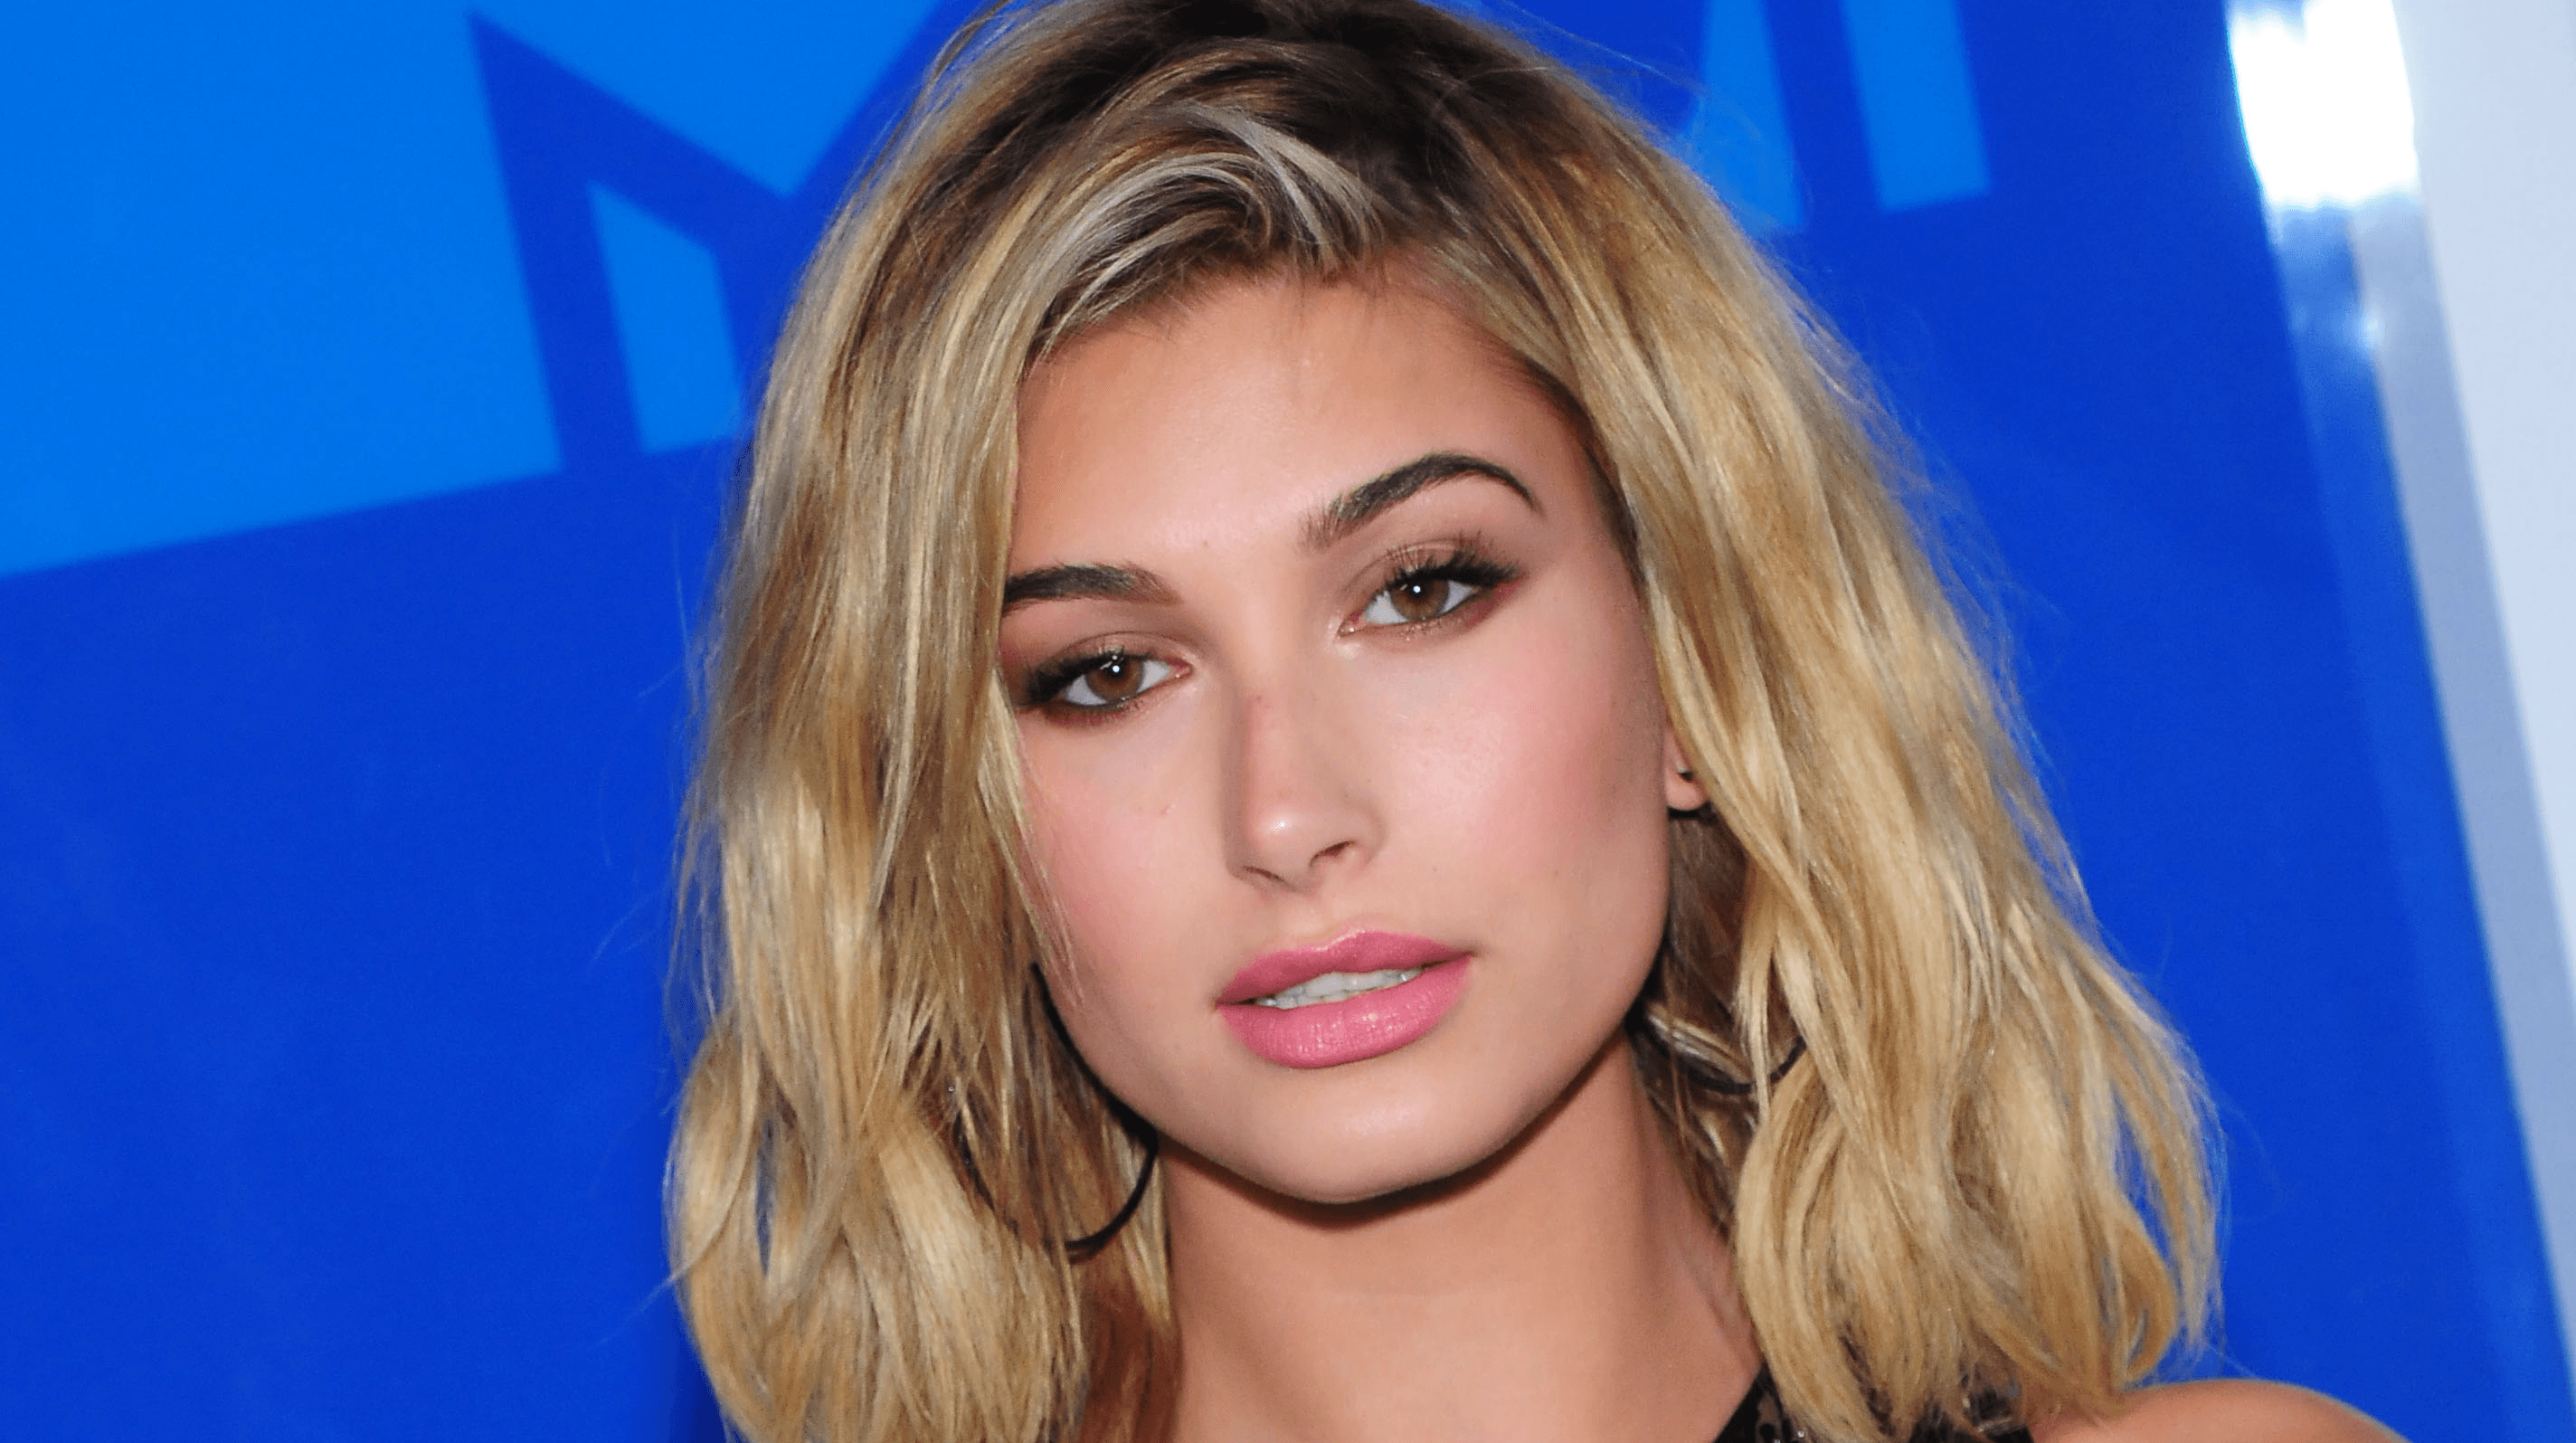 Hailey Baldwin Free HD Wallpapers Images Backgrounds